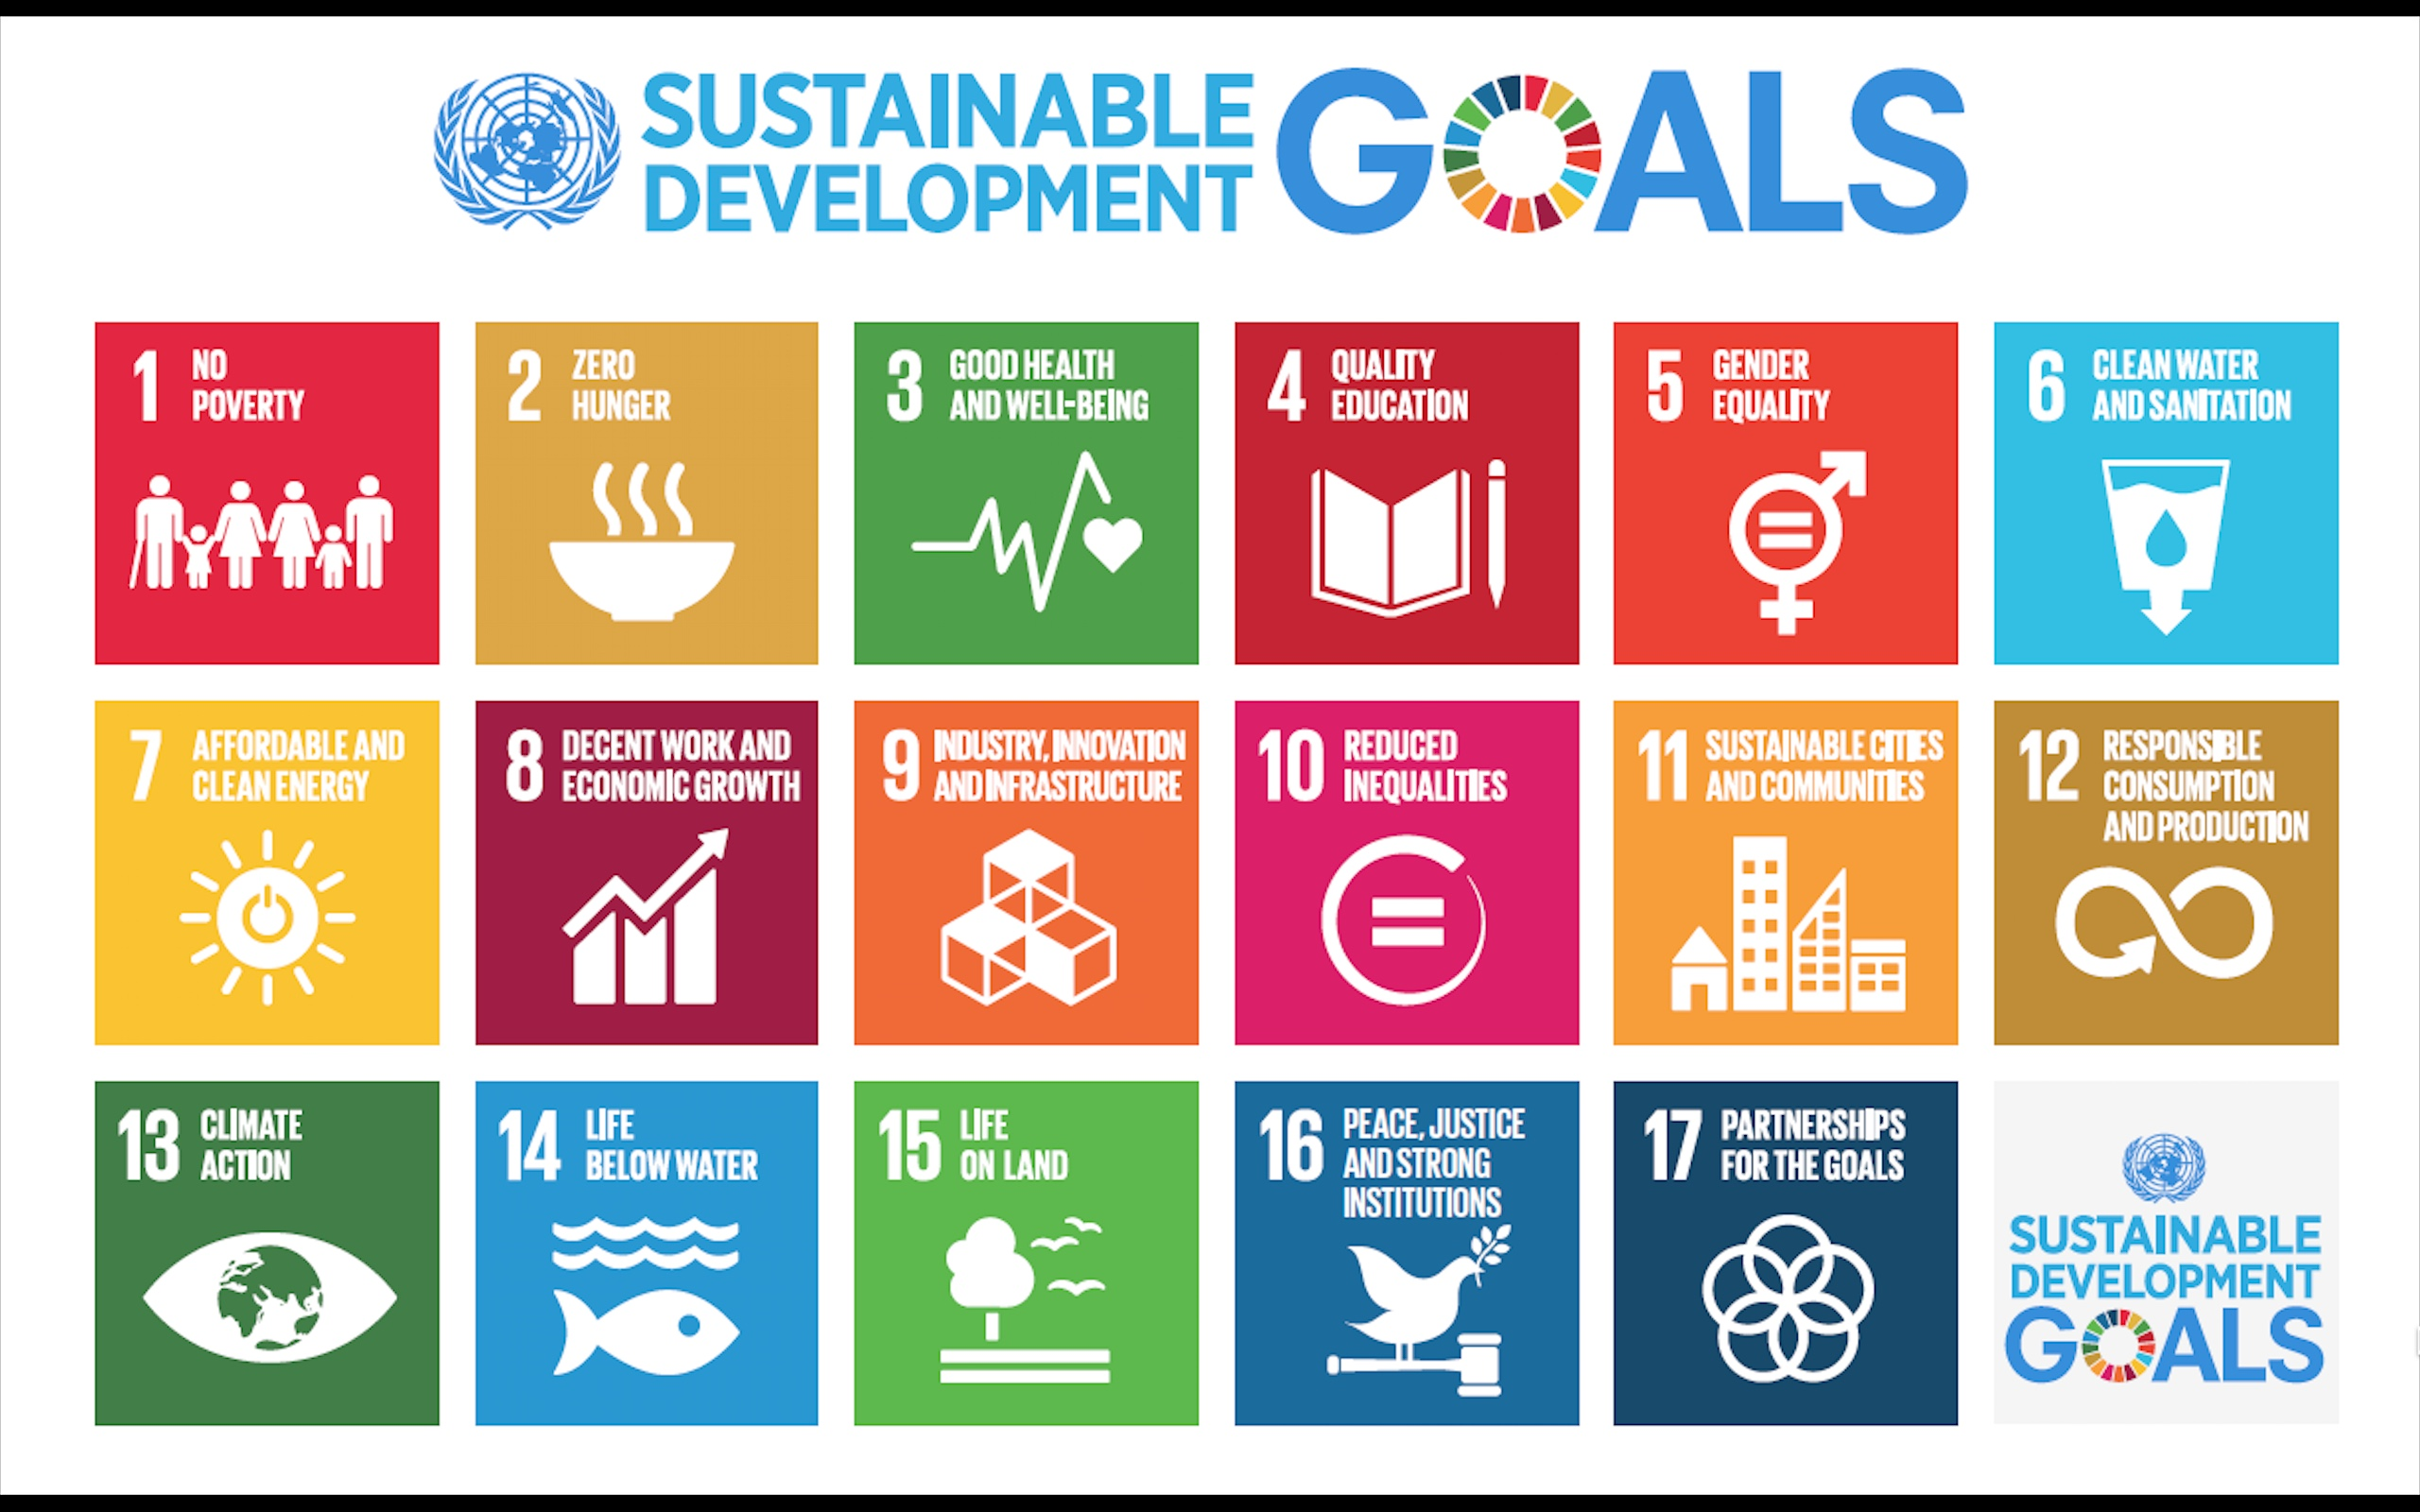 17 Sustainable Goals for Sustainable Development on the 2030 Agenda